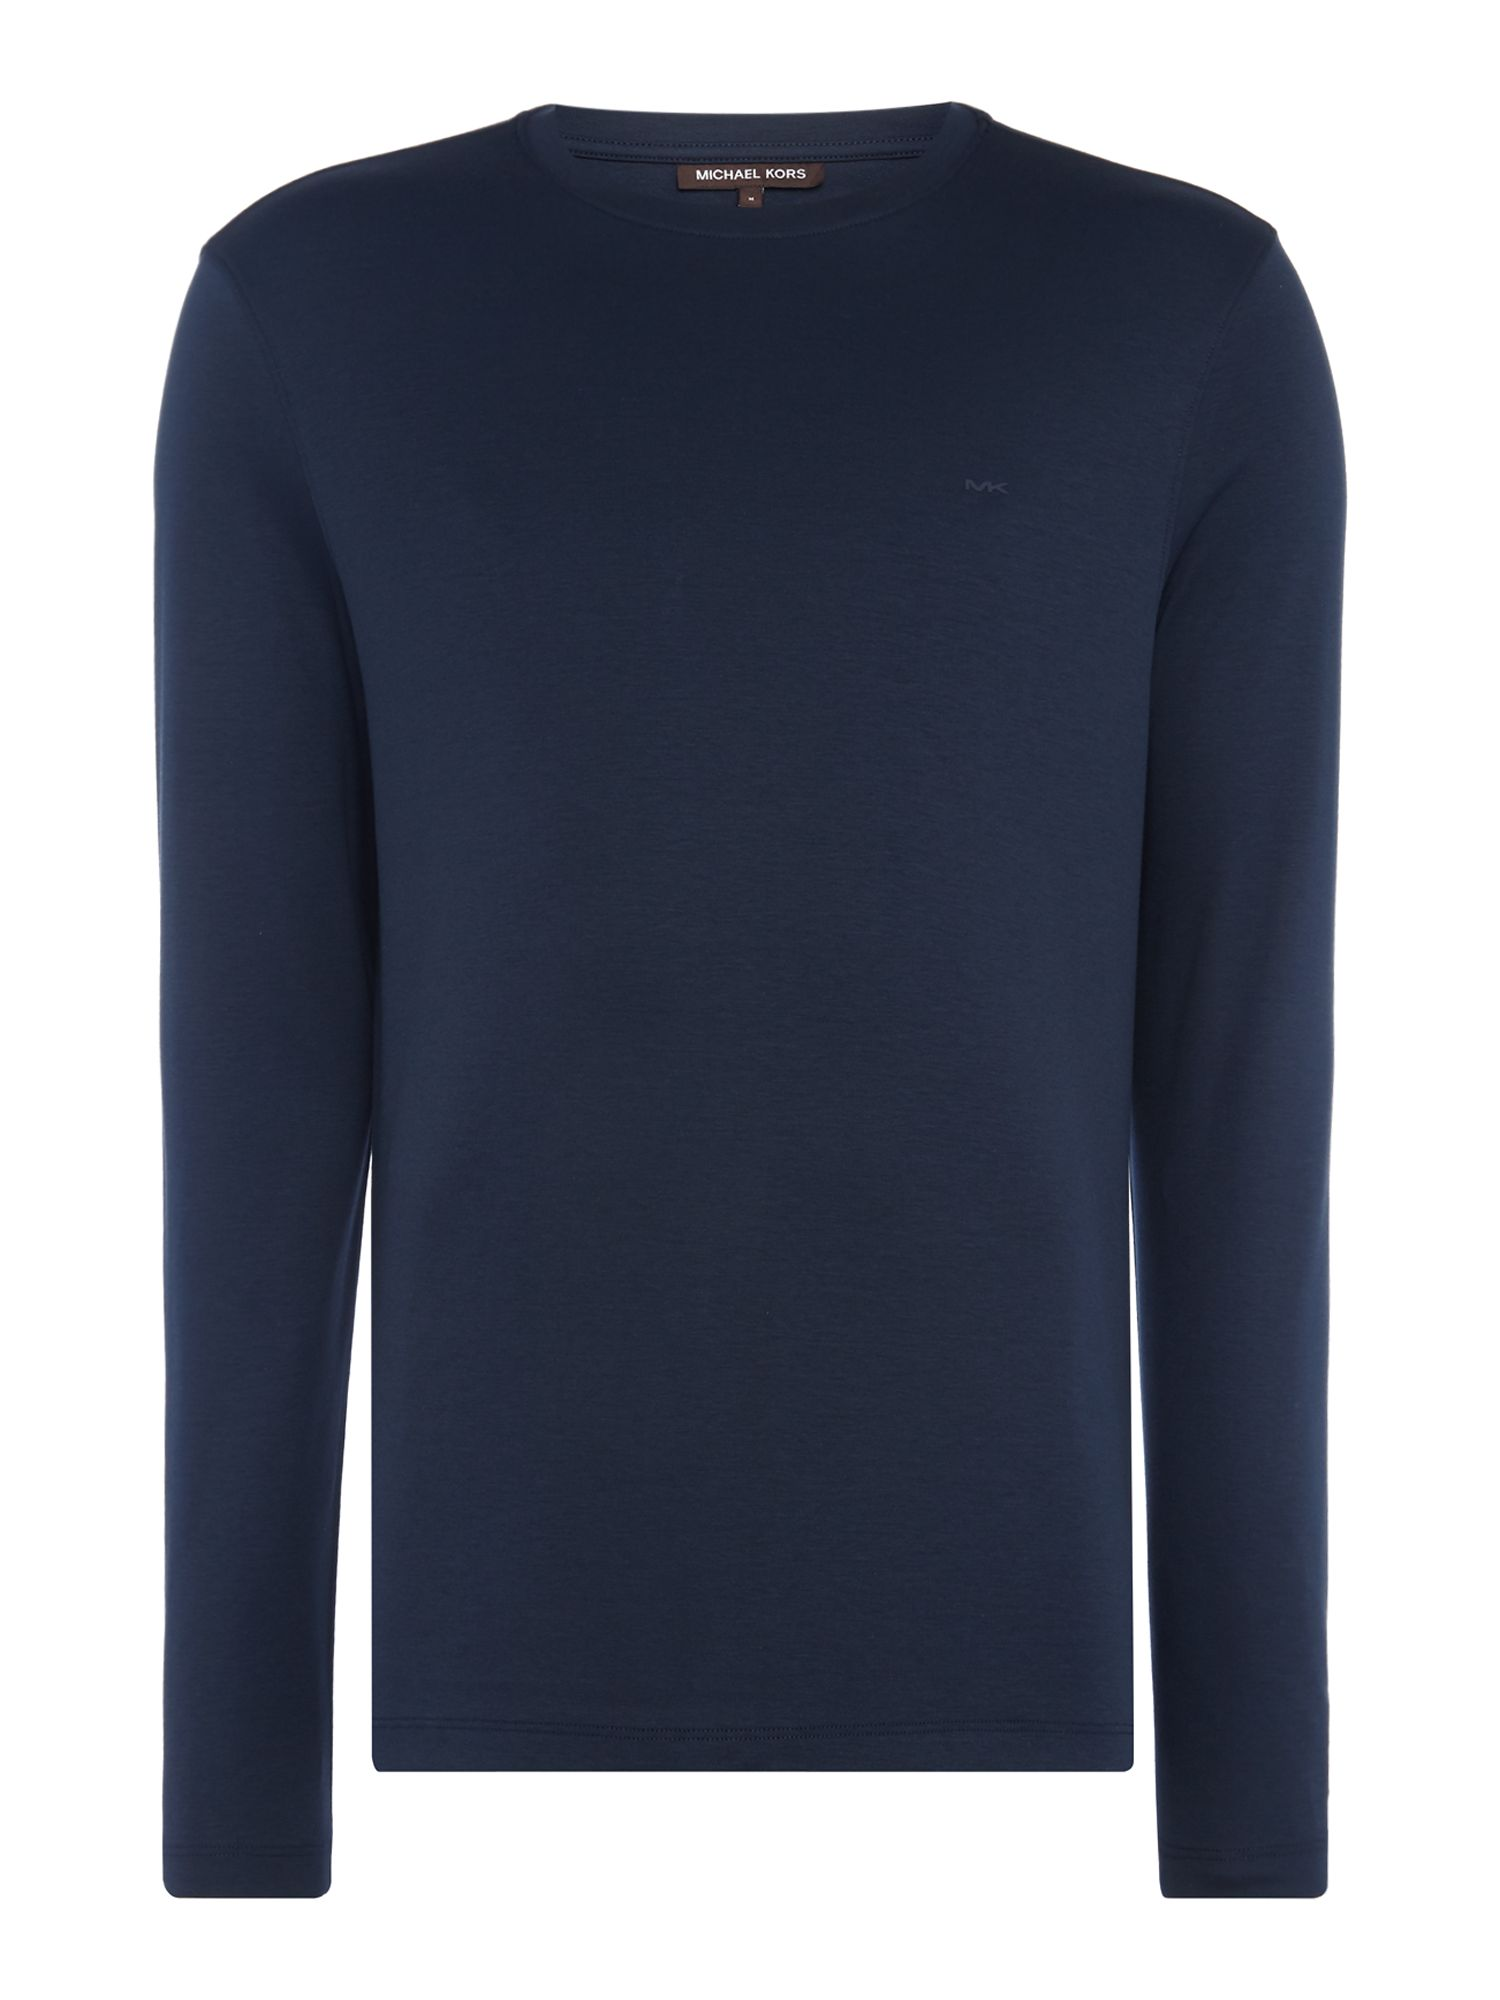 Men's Michael Kors Sleek Long Sleeve Crew Neck T-Shirt, Blue